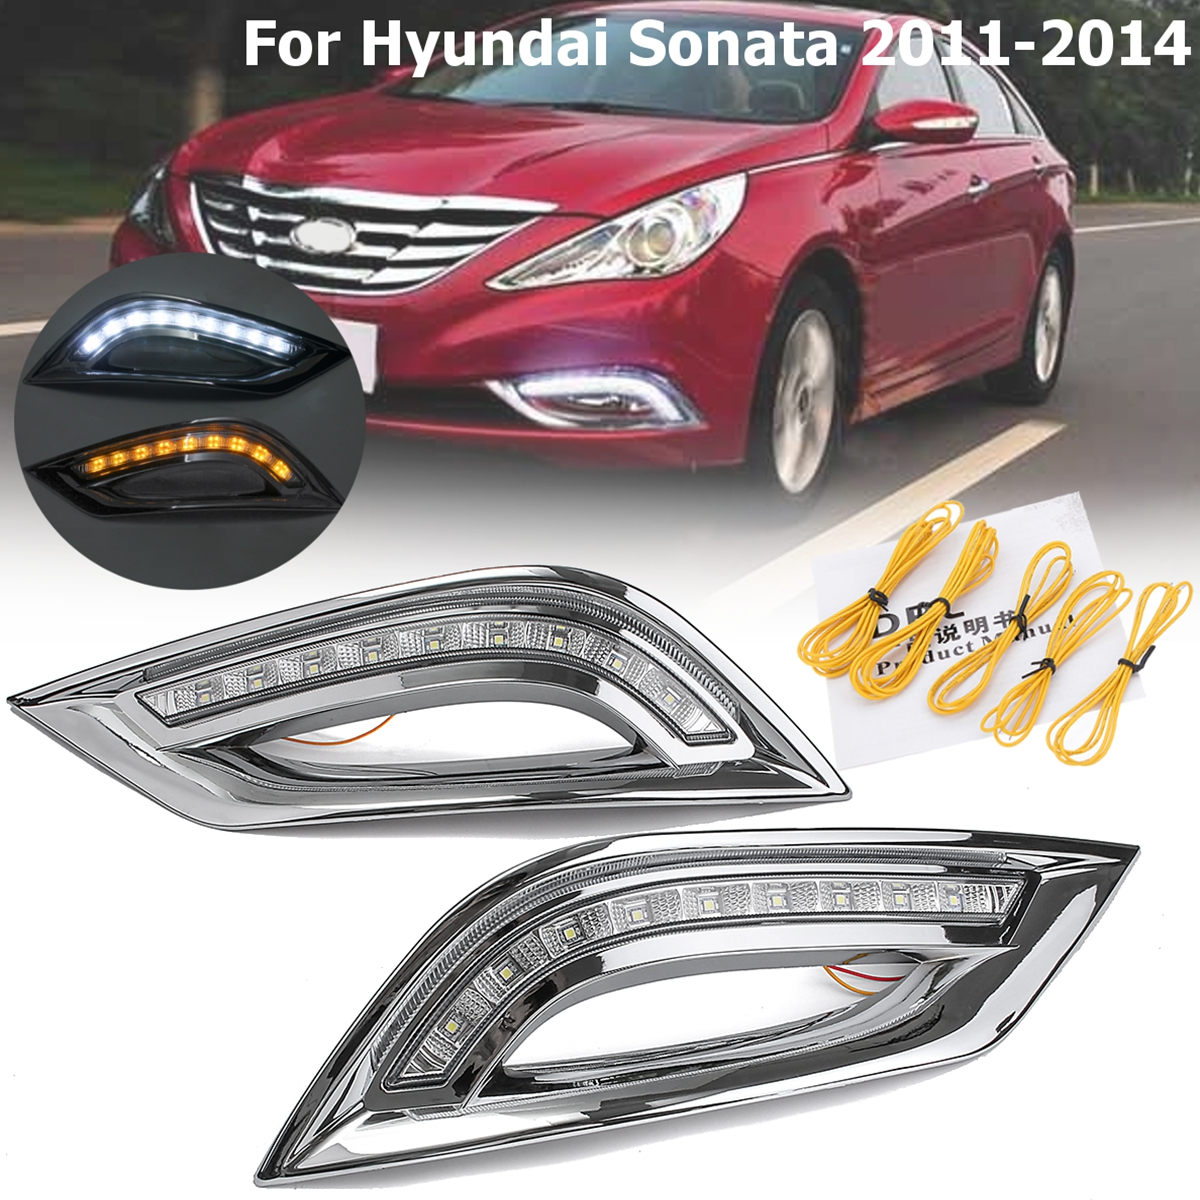 1 Pair  Left and Right LED DRL Daytime Running Lights Turn Signal Fog Lights Lamp For Hyundai Sonata 2011 2012 2013 20141 Pair  Left and Right LED DRL Daytime Running Lights Turn Signal Fog Lights Lamp For Hyundai Sonata 2011 2012 2013 2014